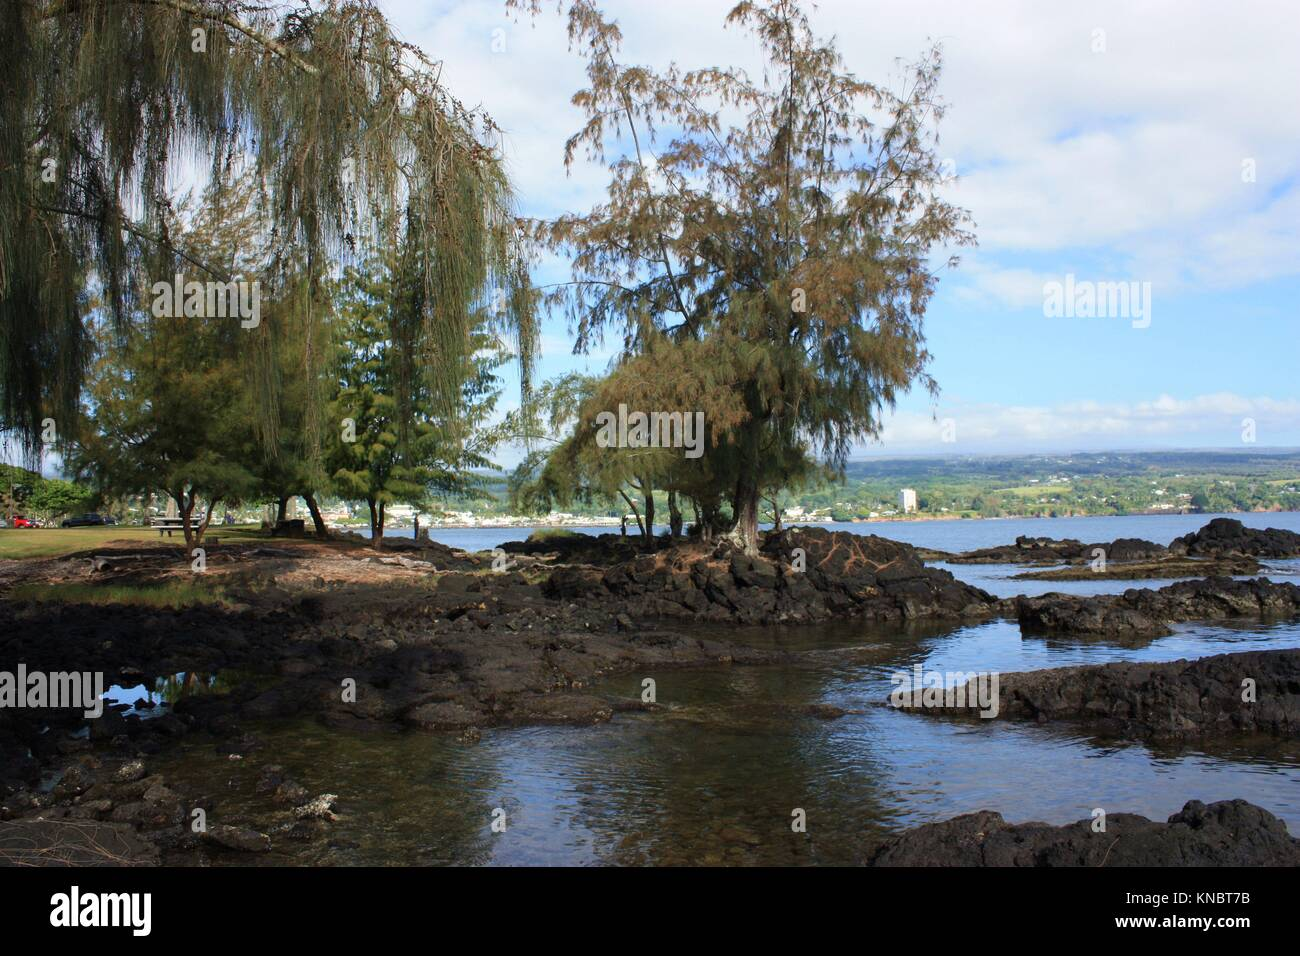 Low tide at a park on Hilo Bay in Hilo, Hawaii. - Stock Image